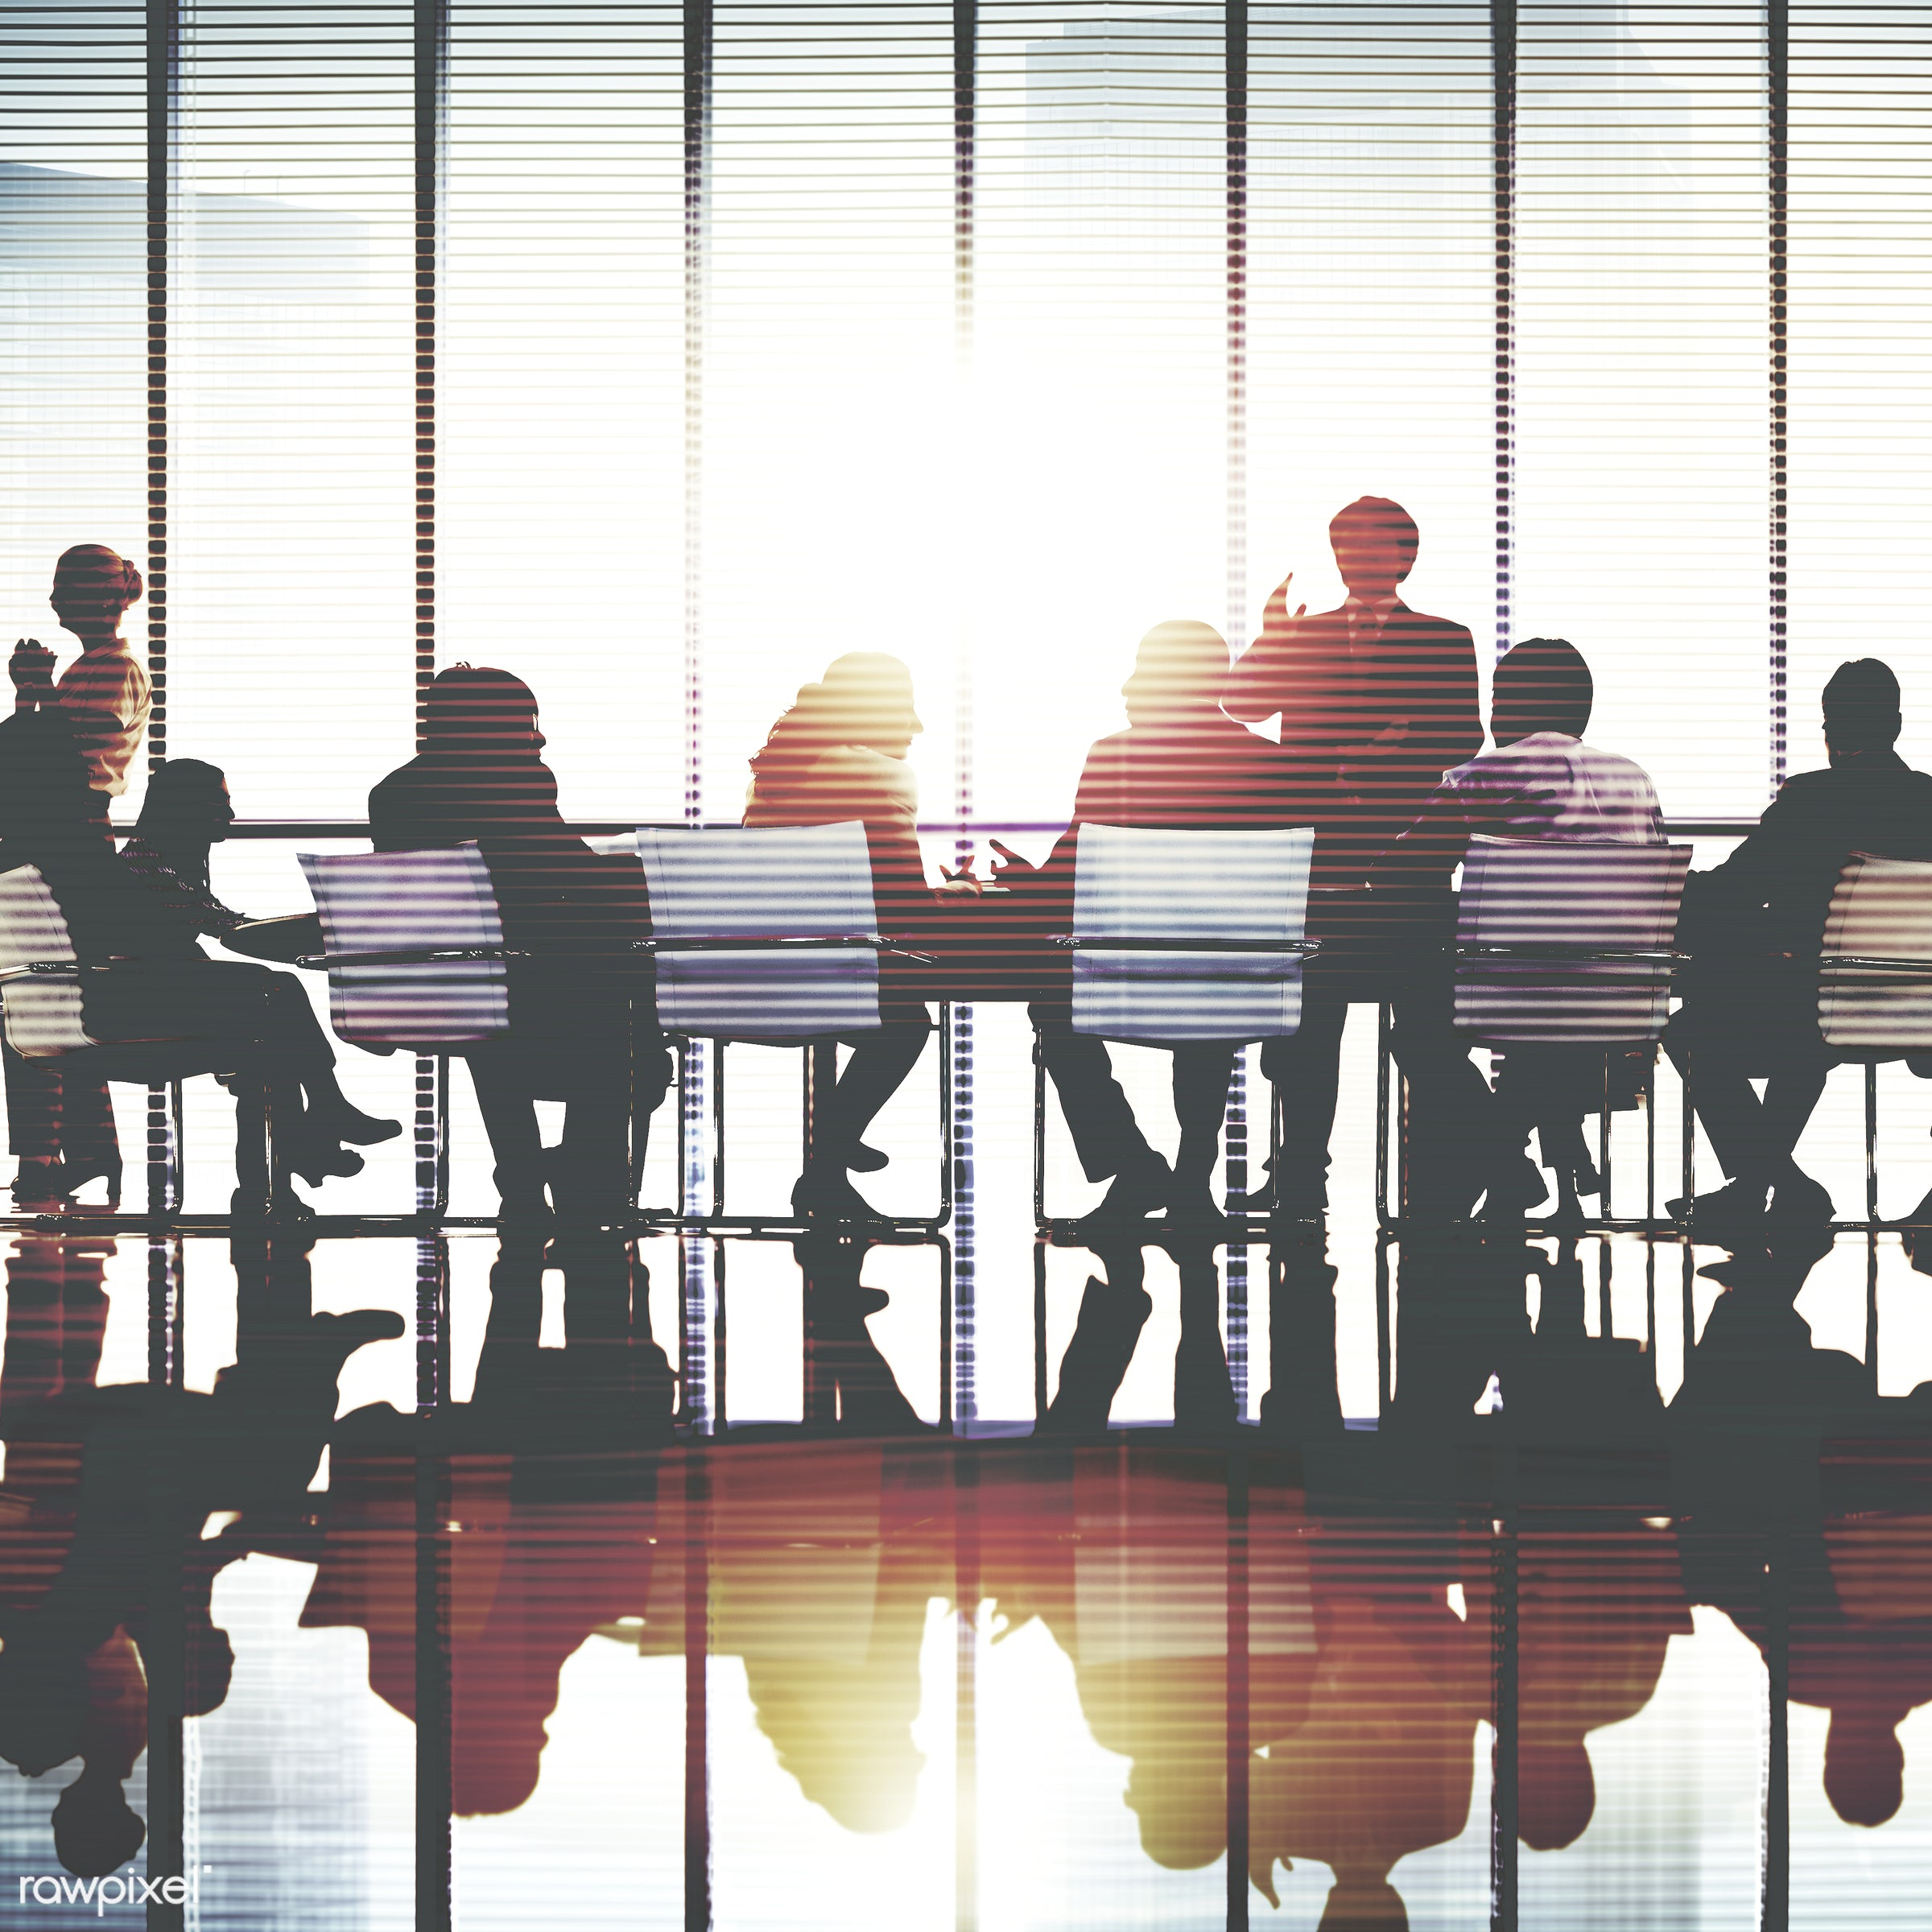 Business people in a board meeting - meeting, discussion, speaker, seminar, board room, presentation, backlit, business,...